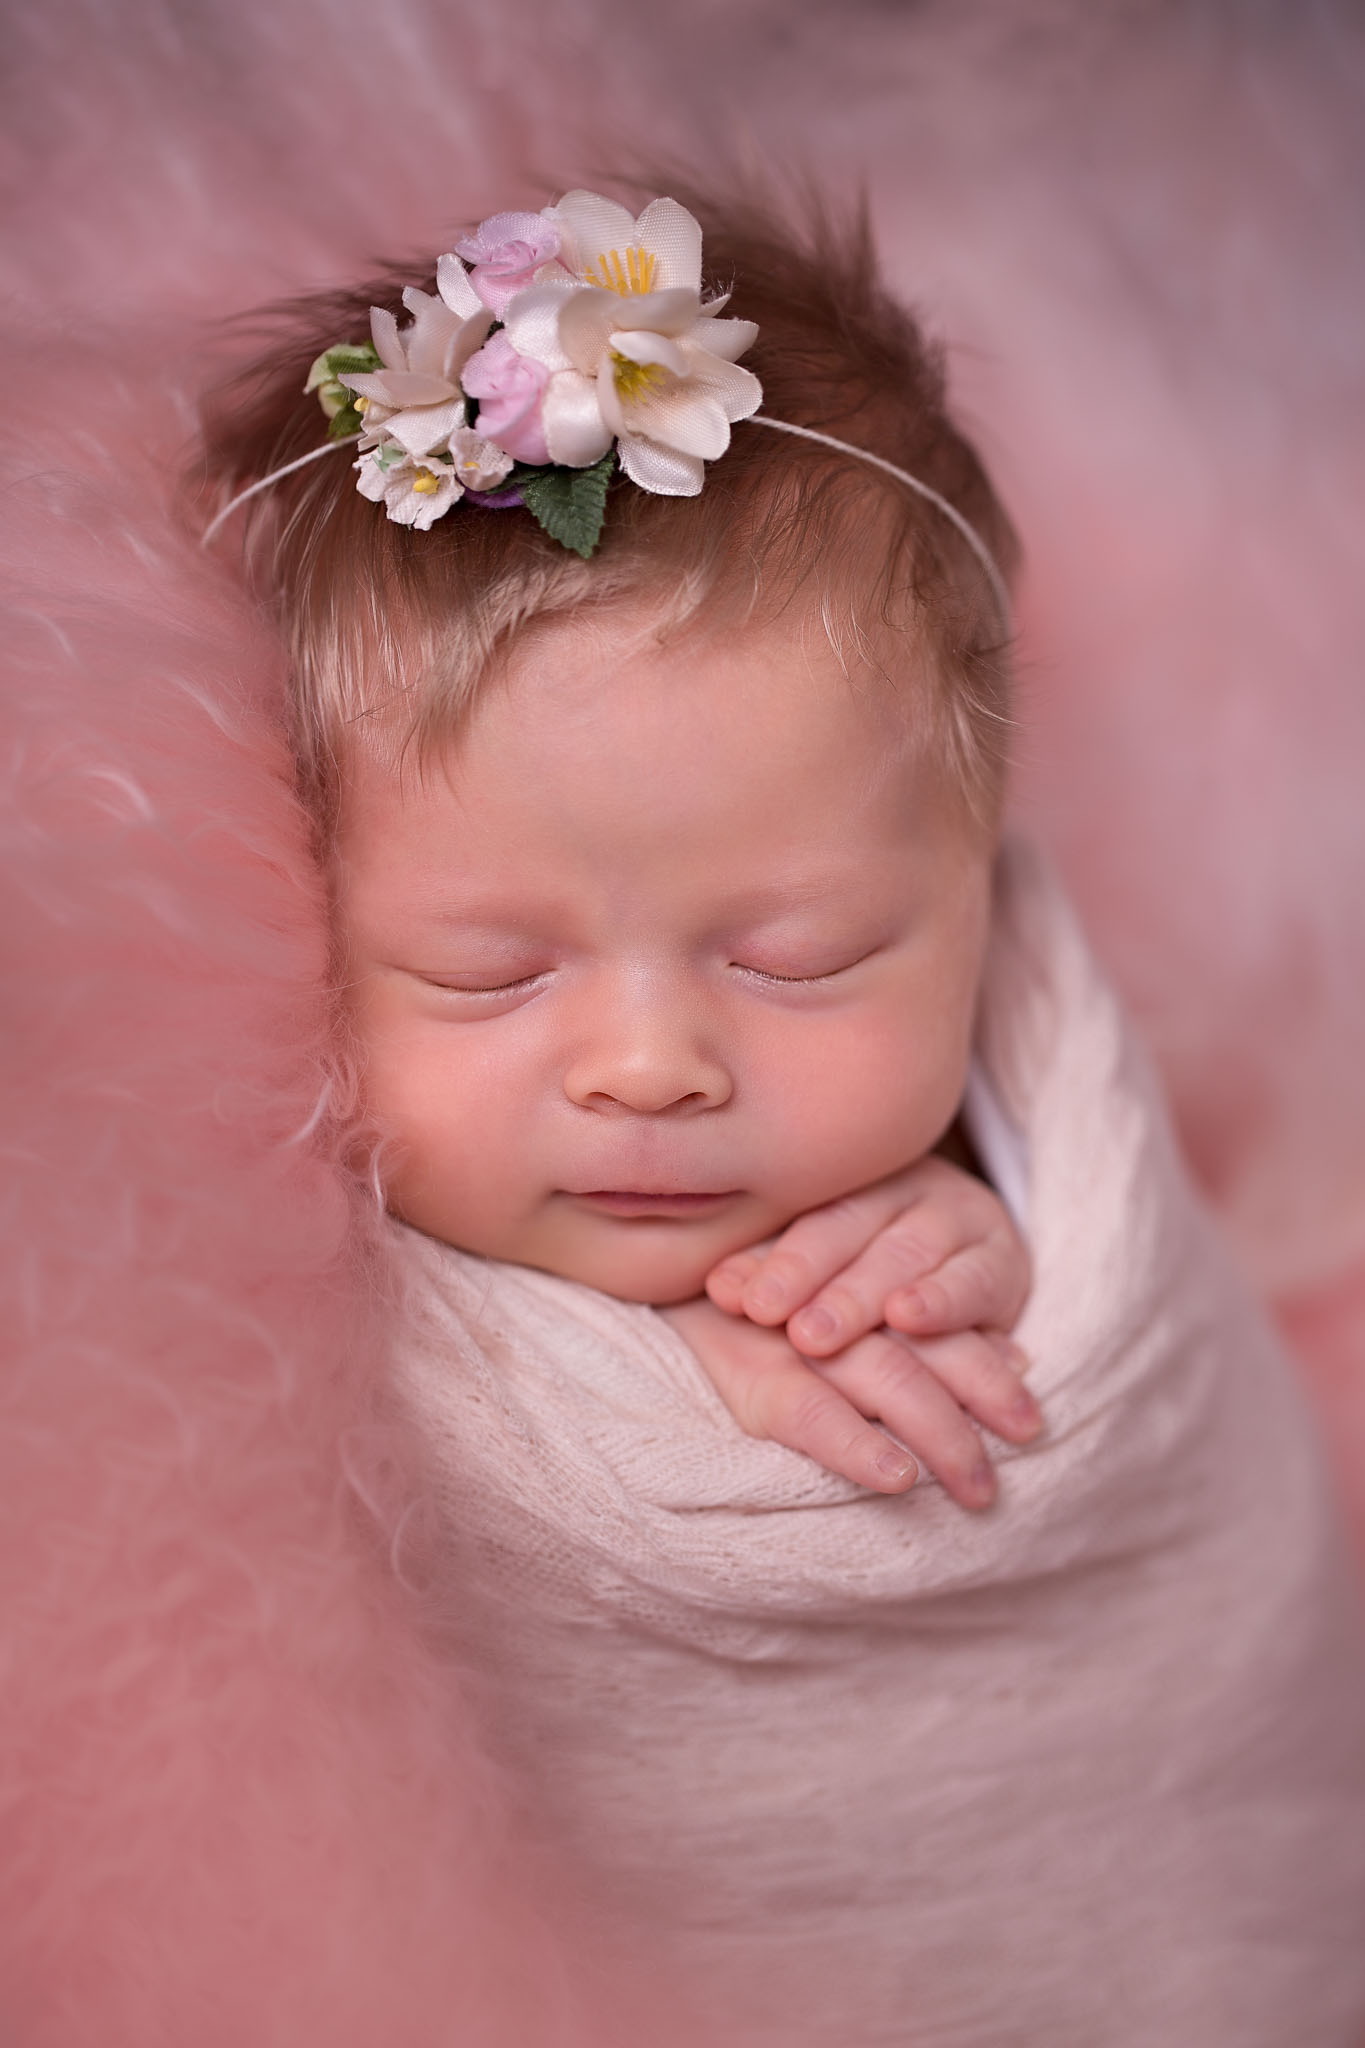 Newborn baby girl with flower headband asleep and posed for a newborn session